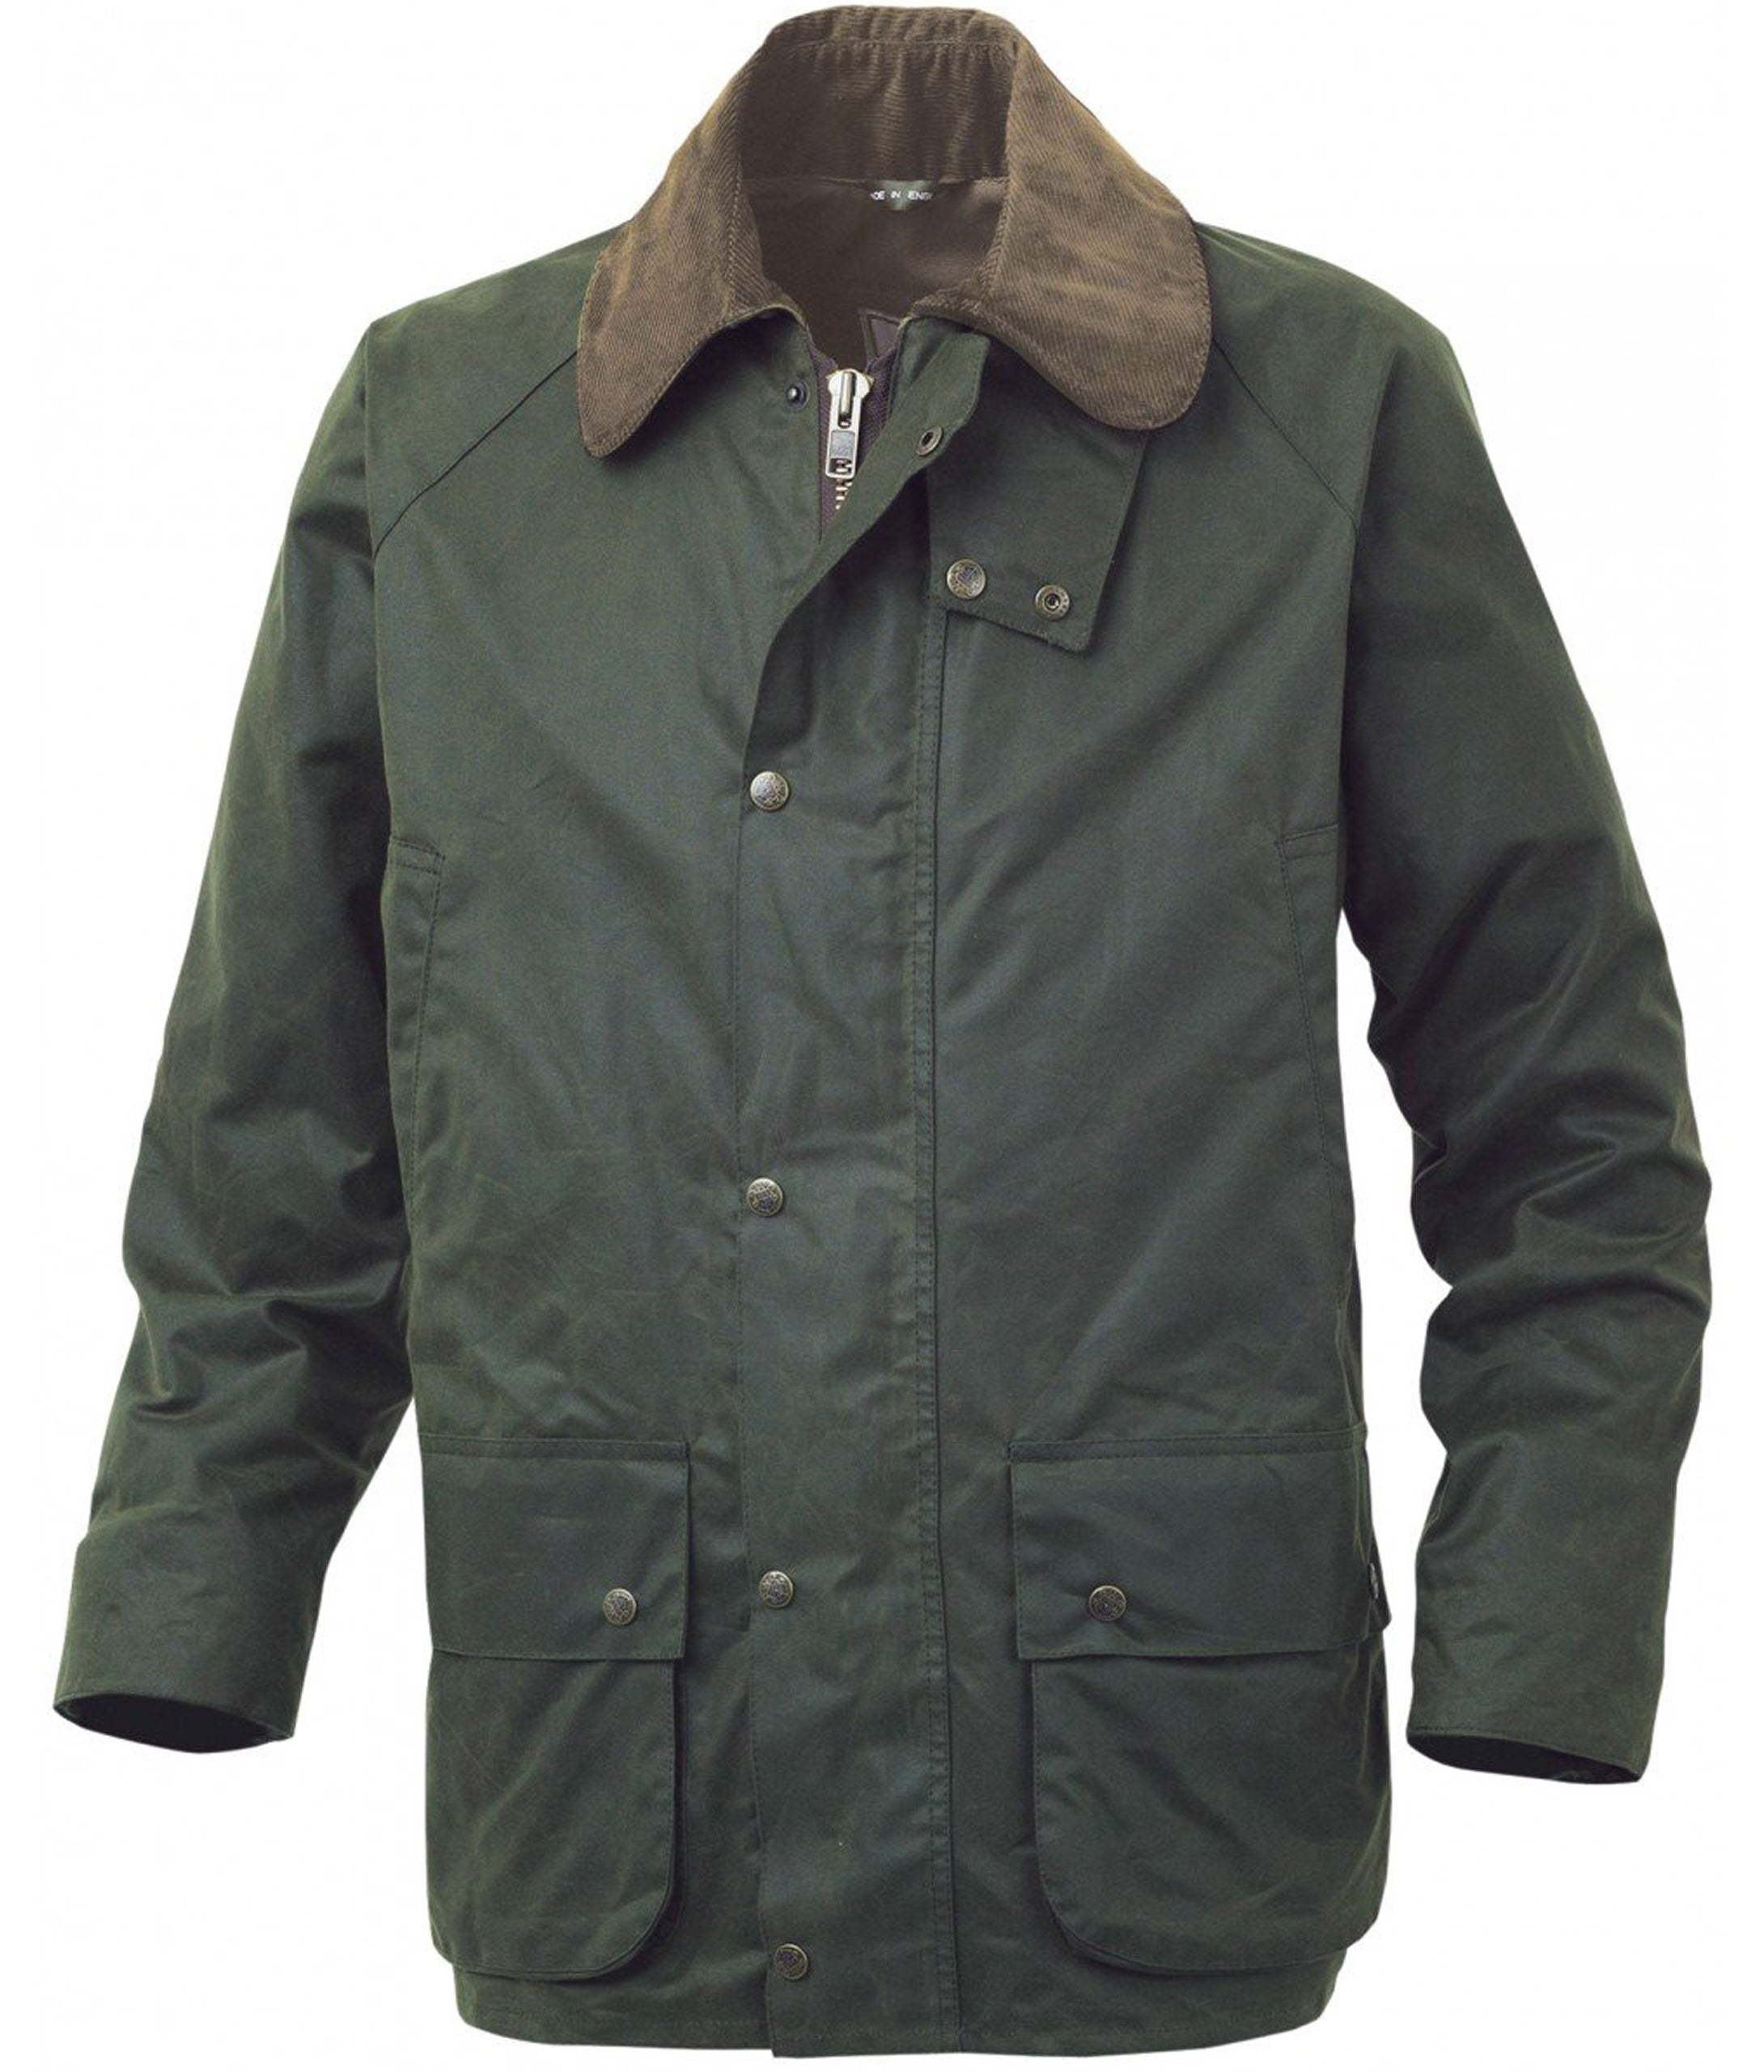 985b0d31bfe21 Alan Paine Sandhurst Hunter Wax Jacket - Olive – UK Covers